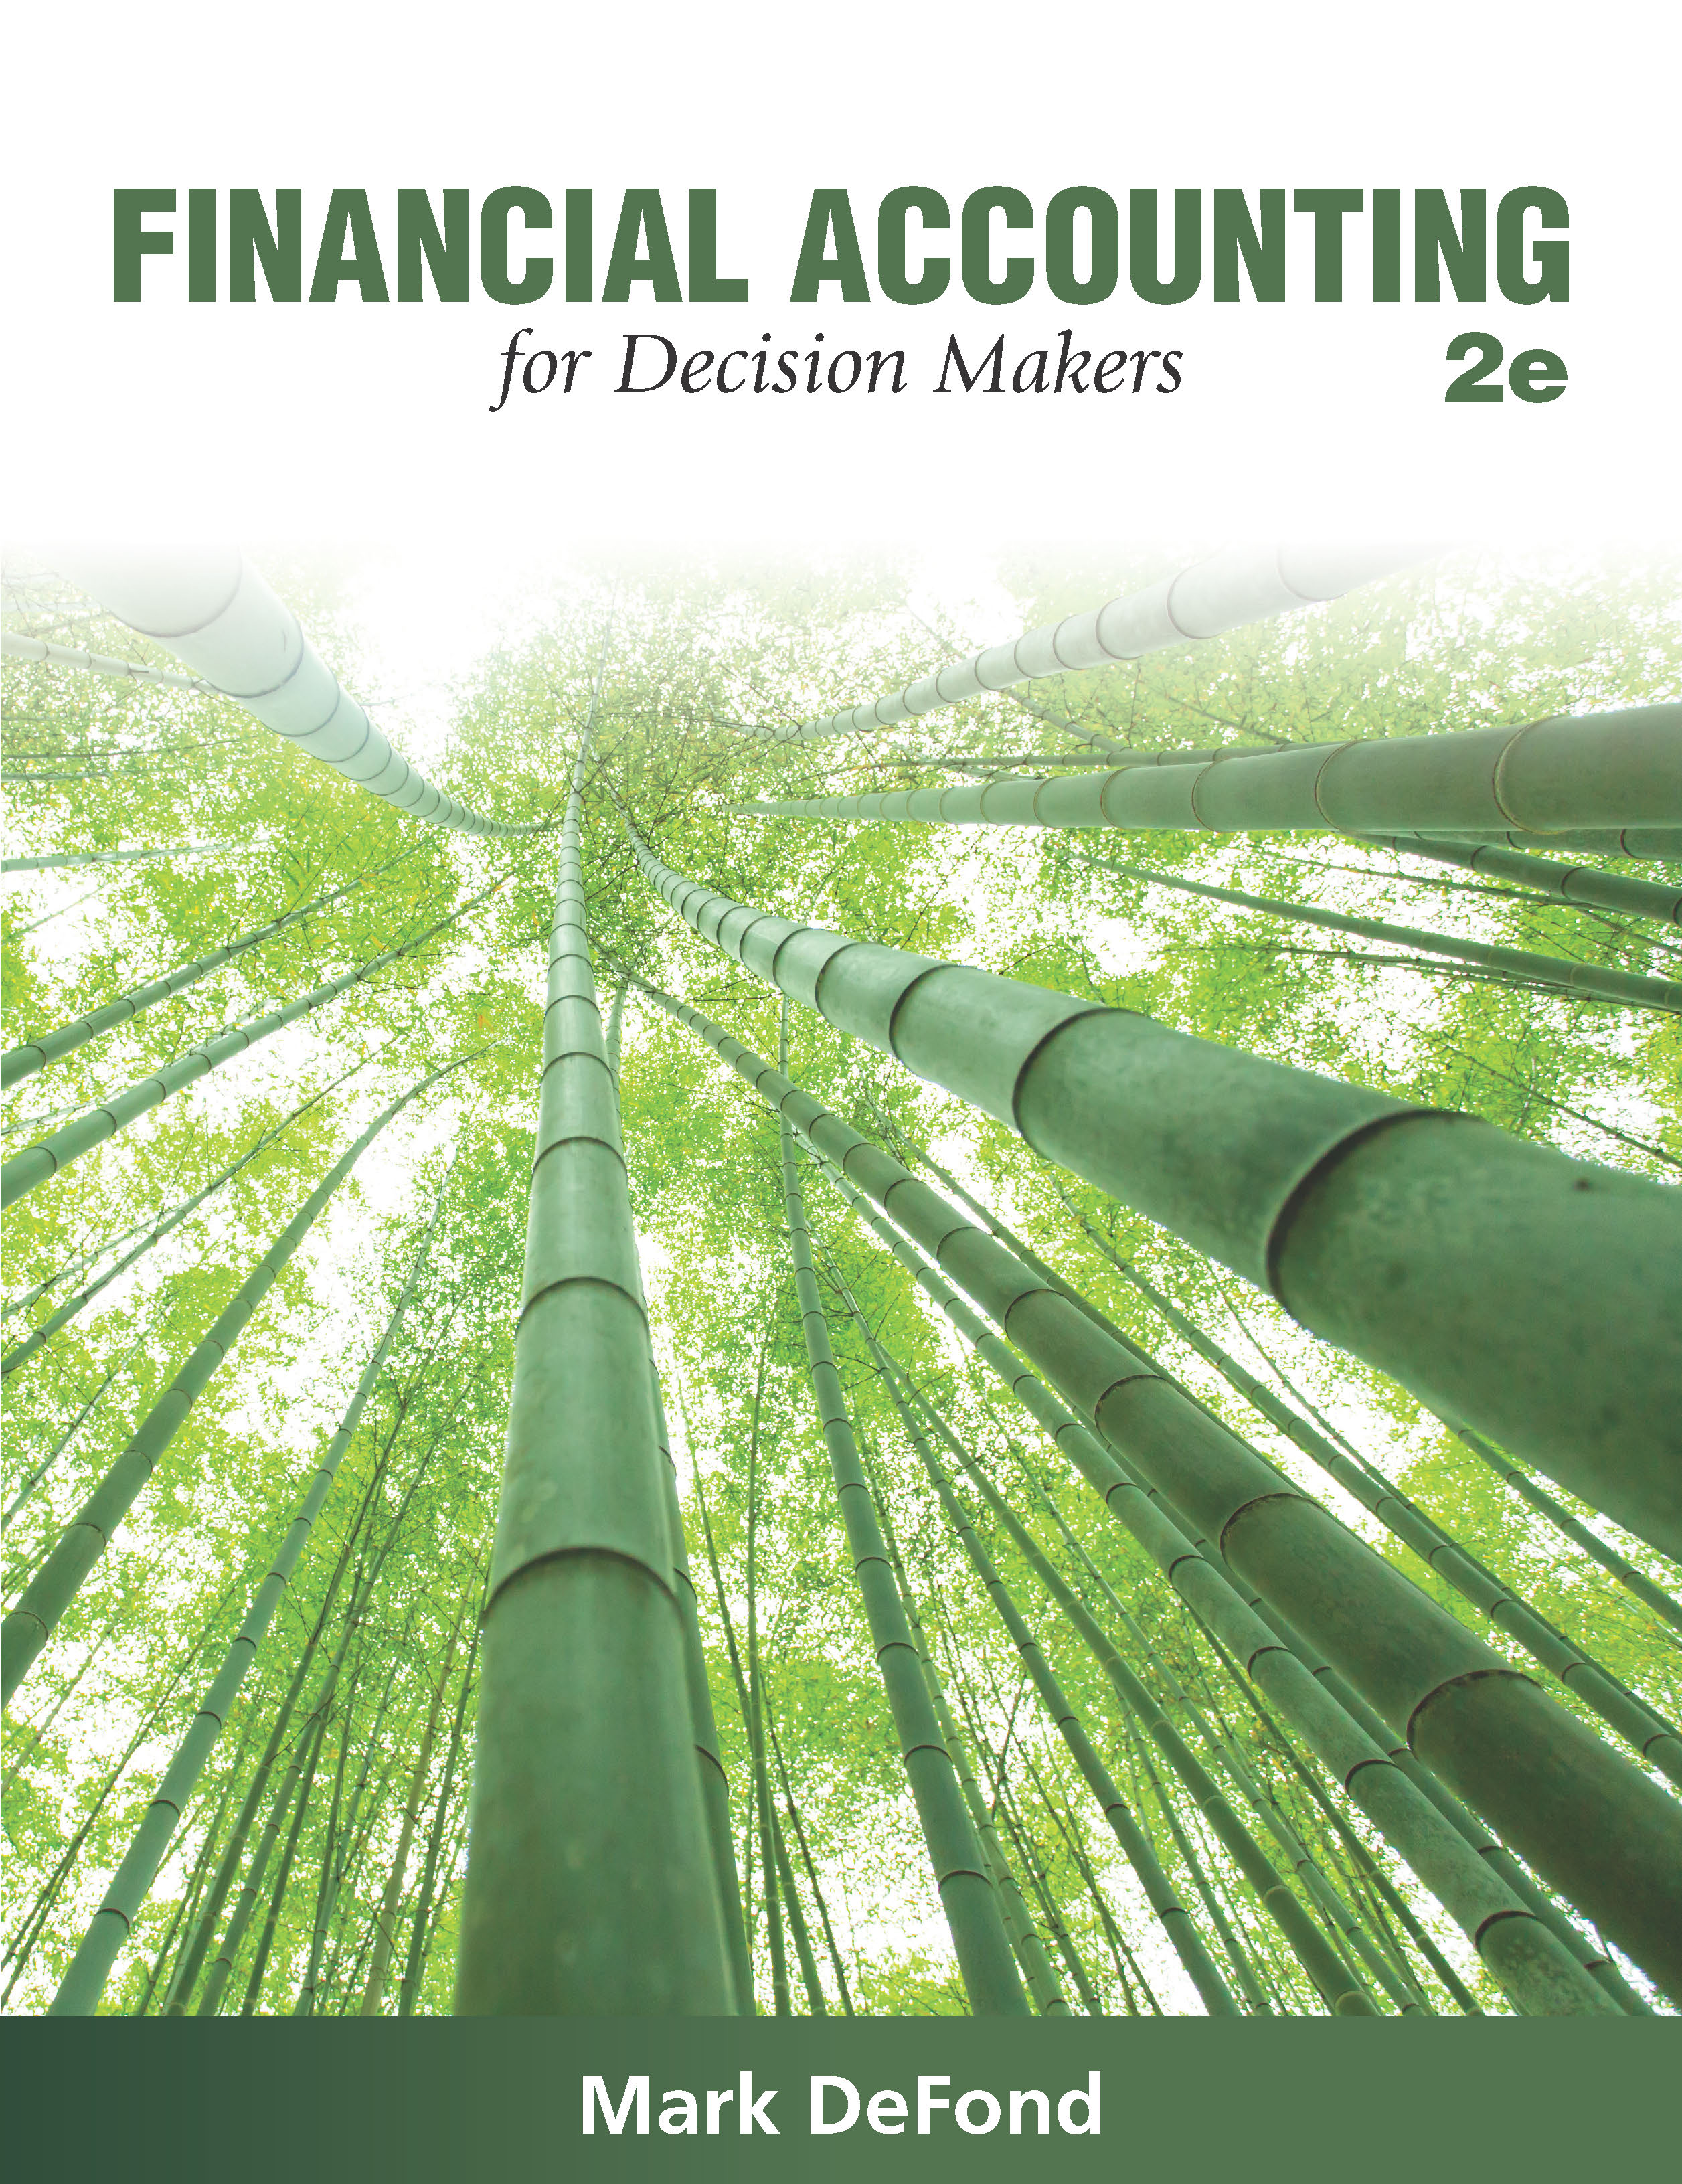 Financial Accounting for Decision Makers, 2e